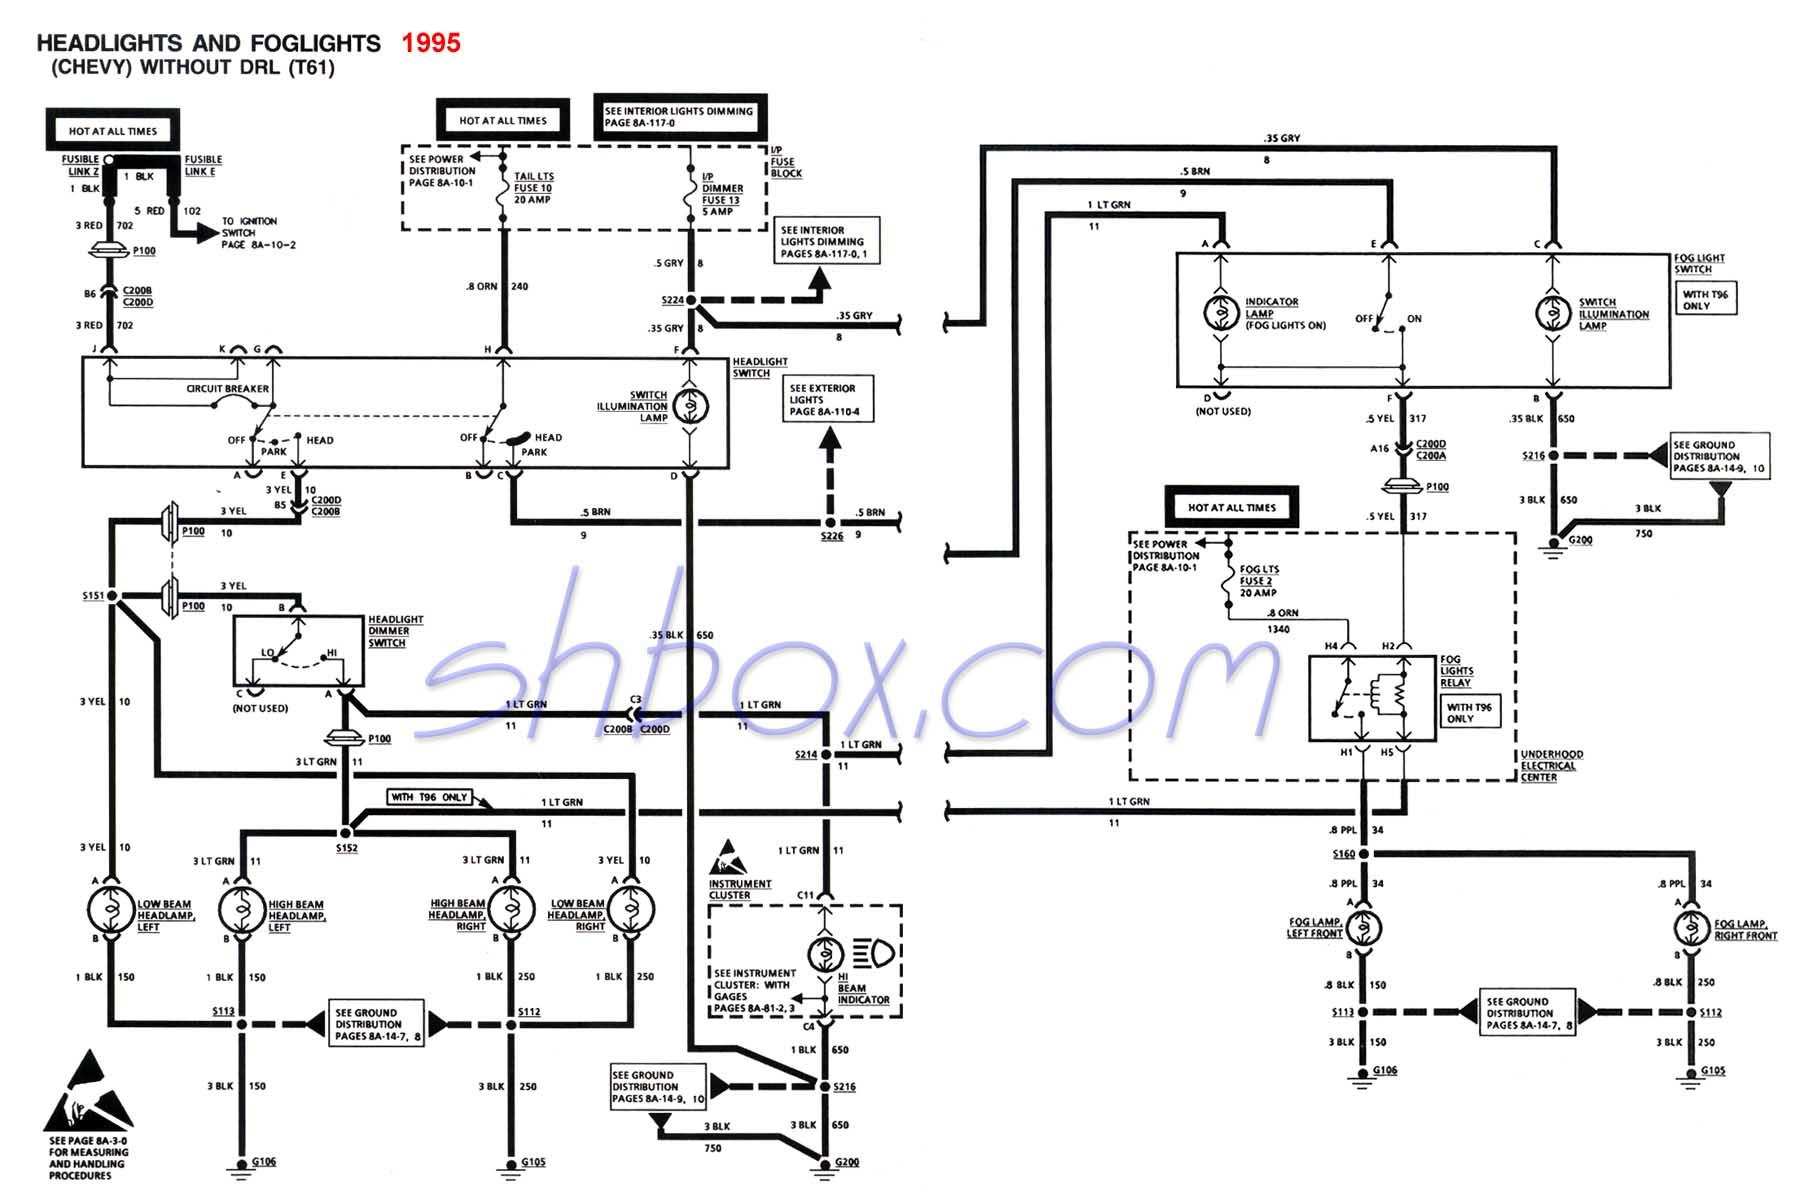 1979 trans am dash wiring diagram 2007 pontiac g6 vacuum lines and gauge install help to newbs page 6